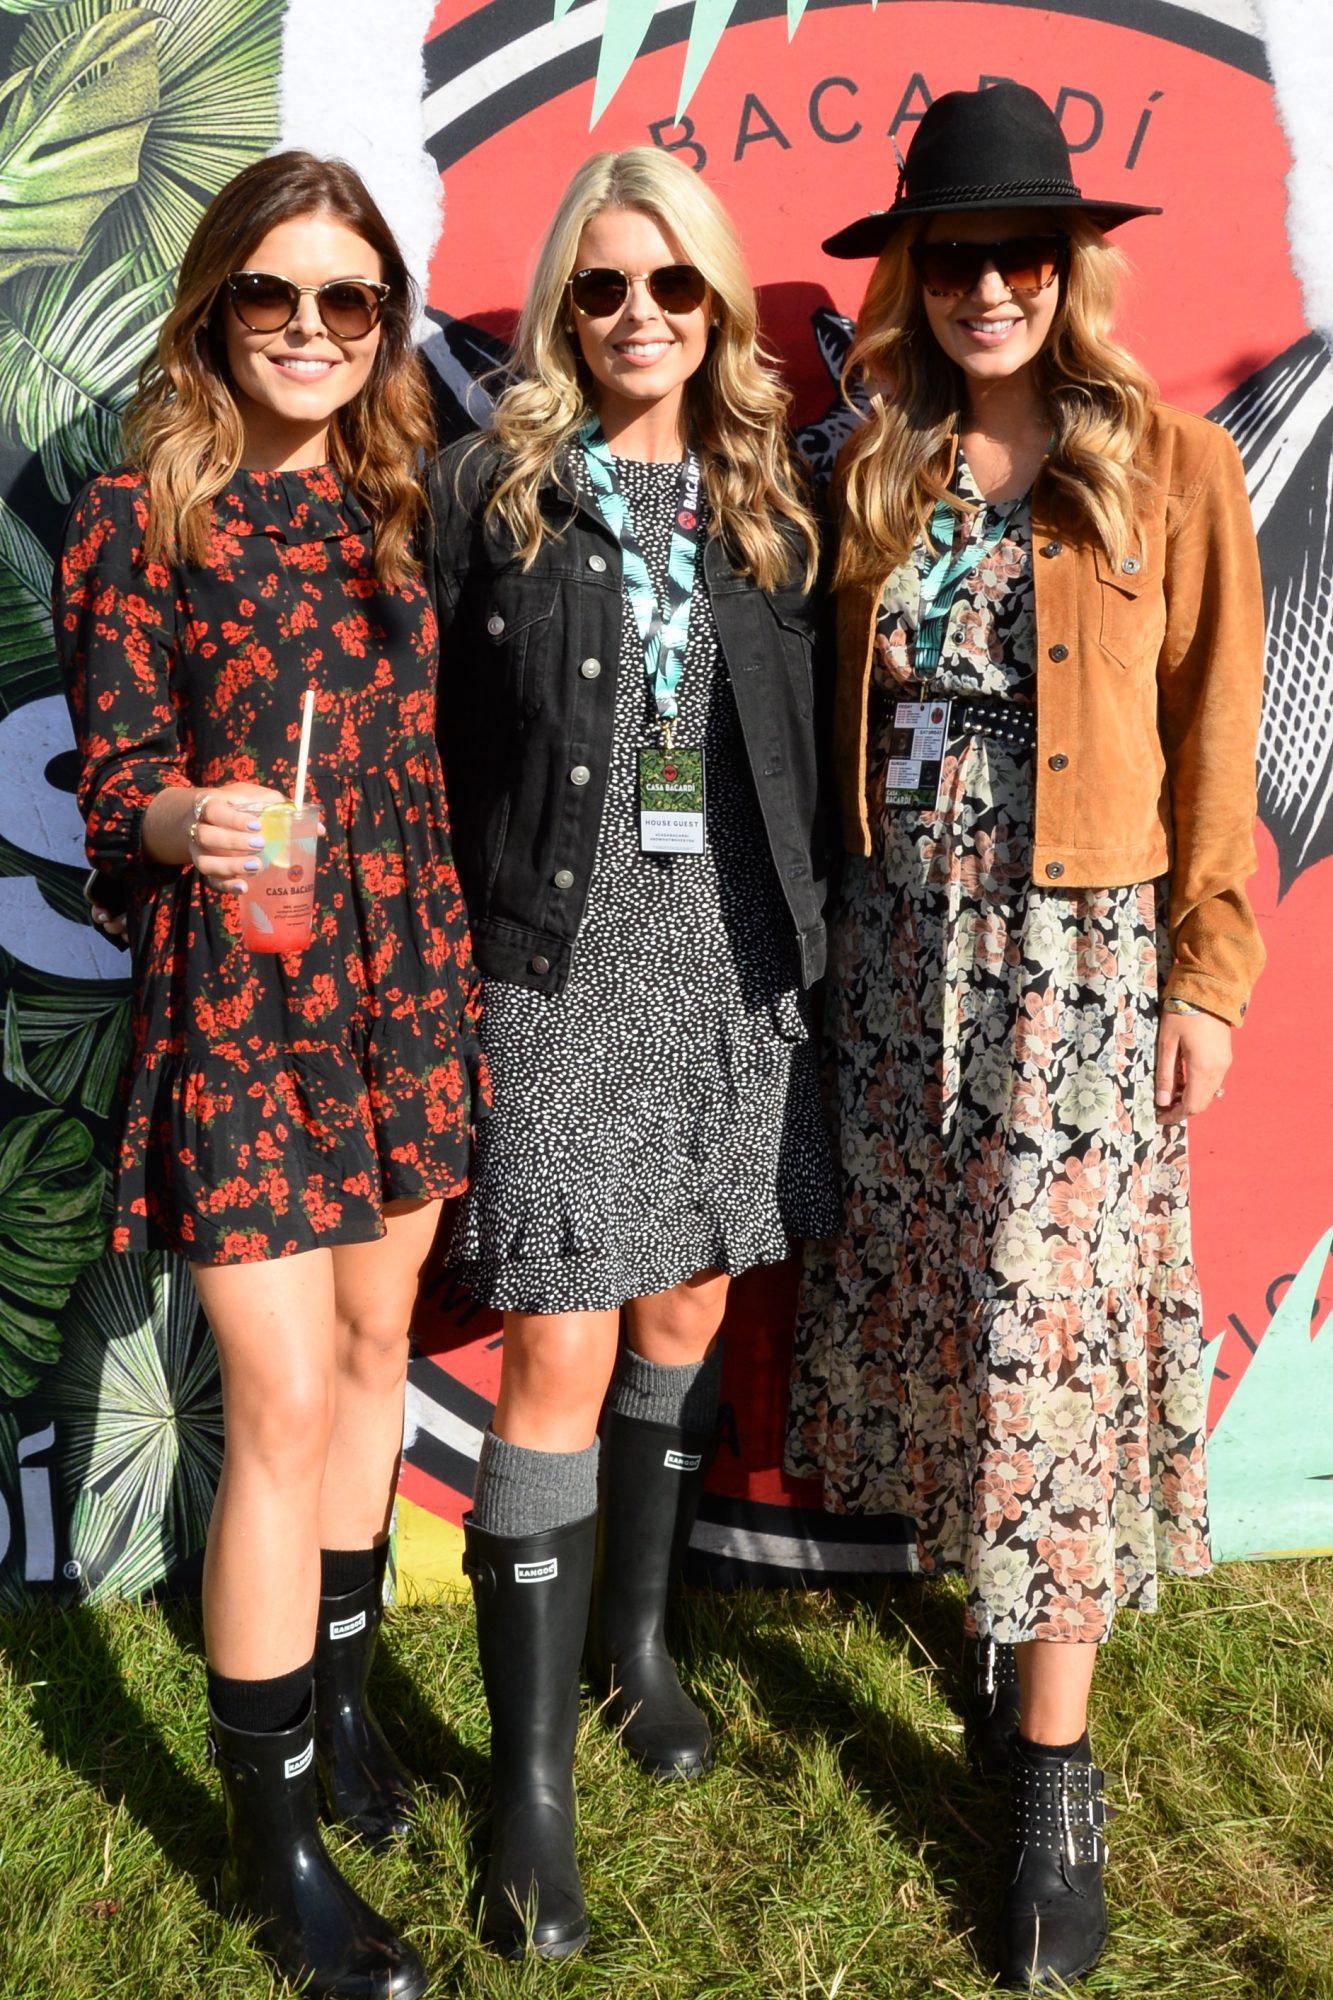 31st August 2019. Doireann, Ailbhe and Aoibhin Garrihy pictured at Casa Bacardi on day 2 of Electric Picnic. Photo: Justin Farrelly.